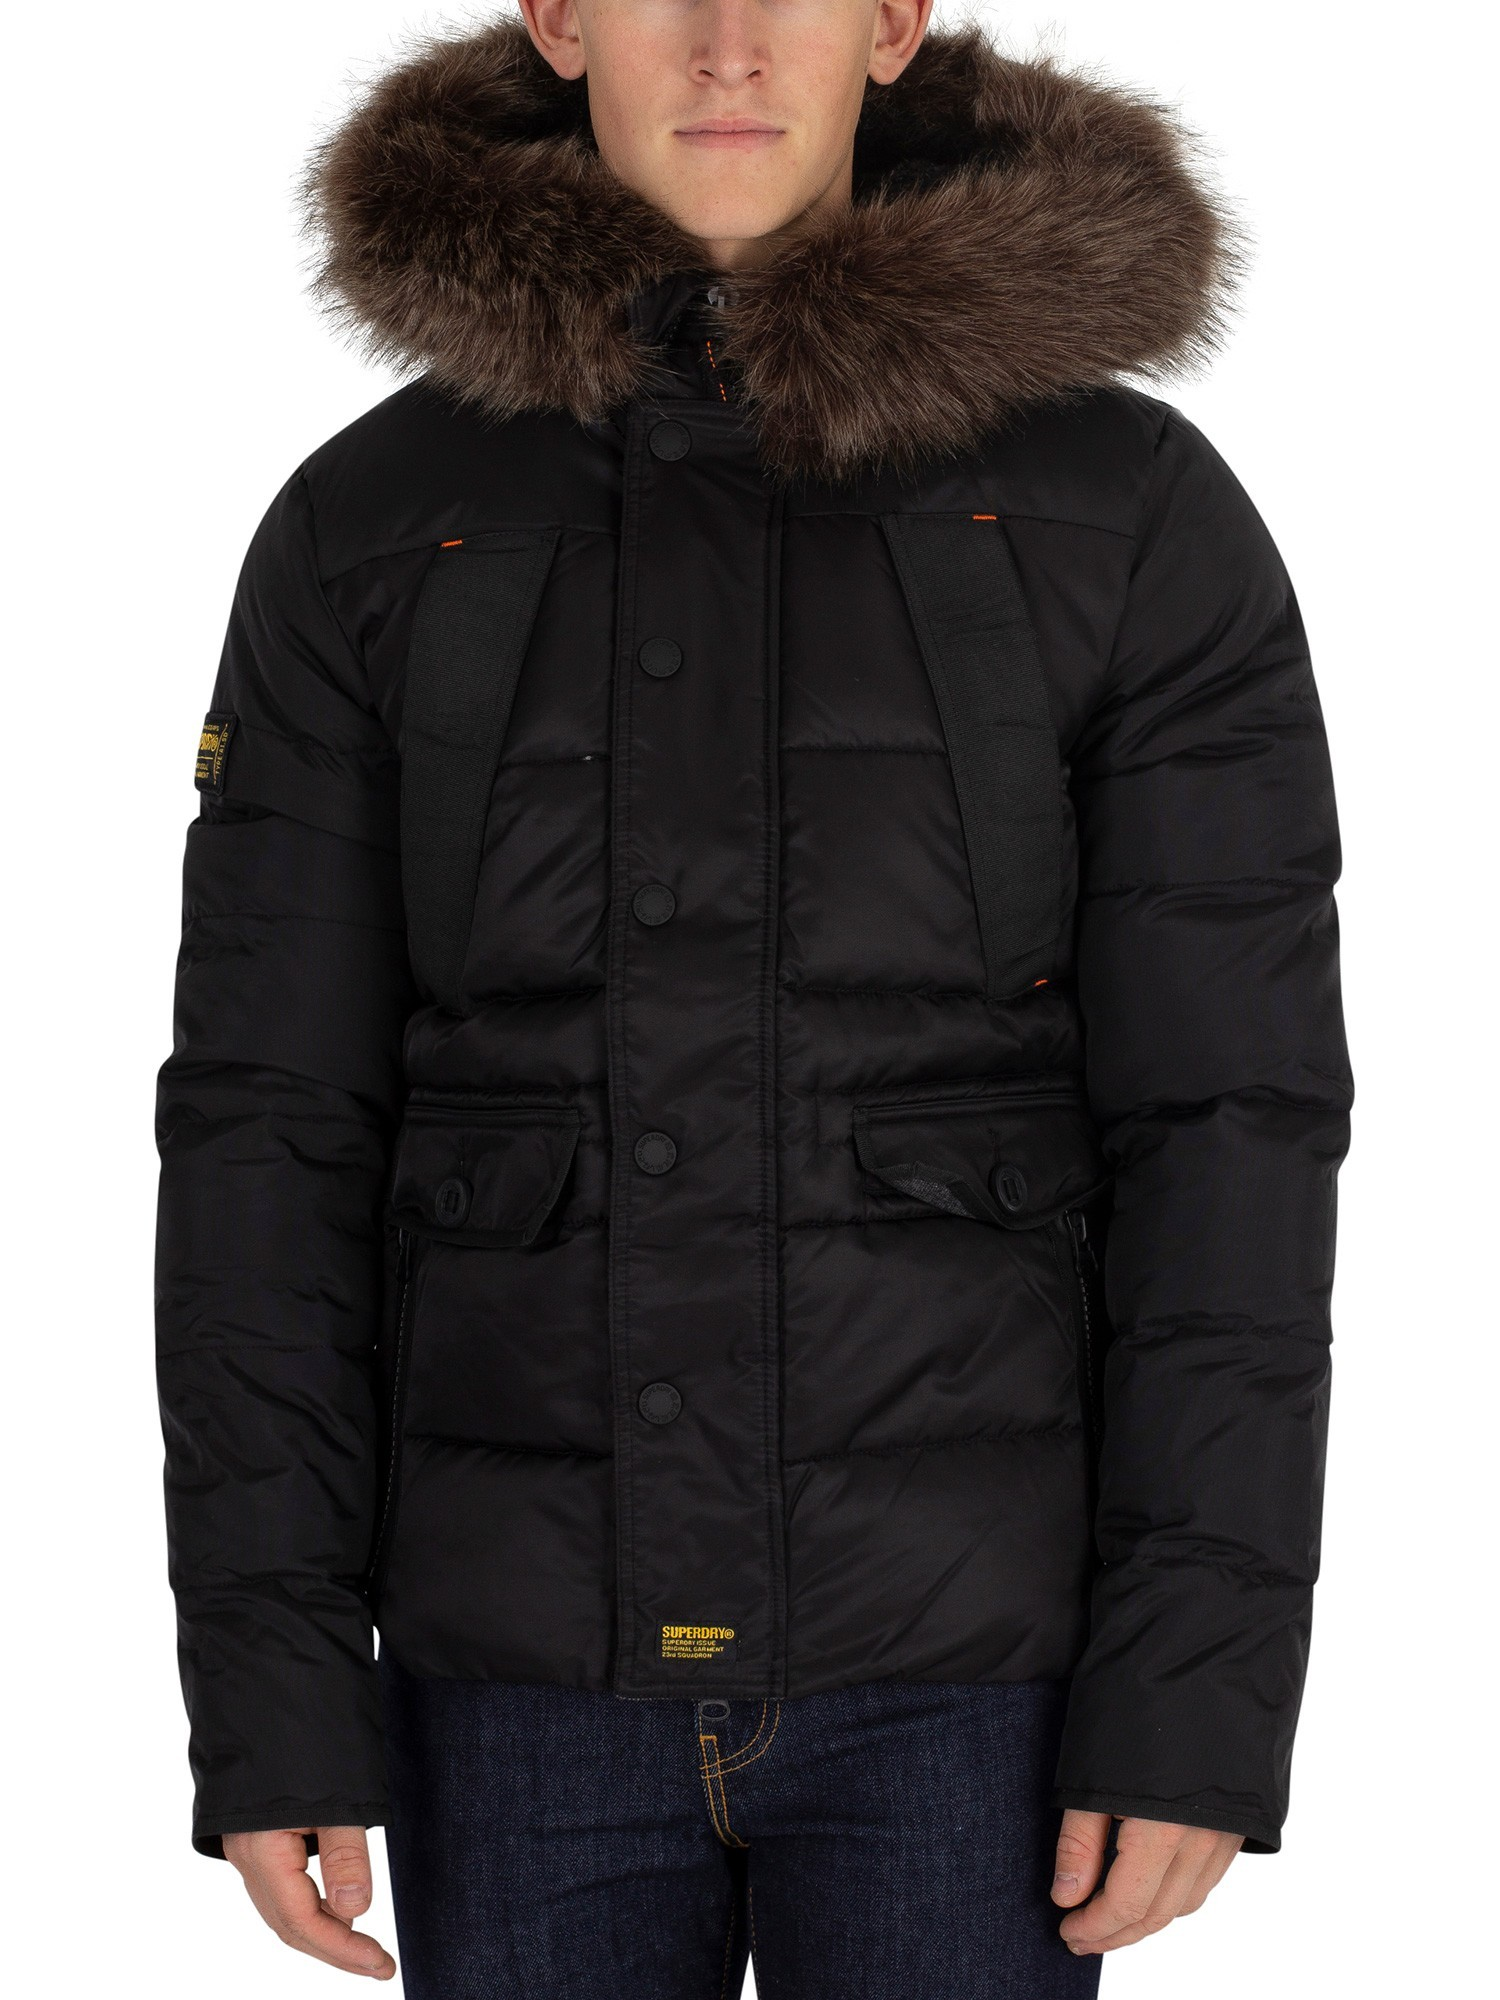 Herren Parka Schwarz Details About Superdry Mens Chinook Parka Jacket Black Show Original Title